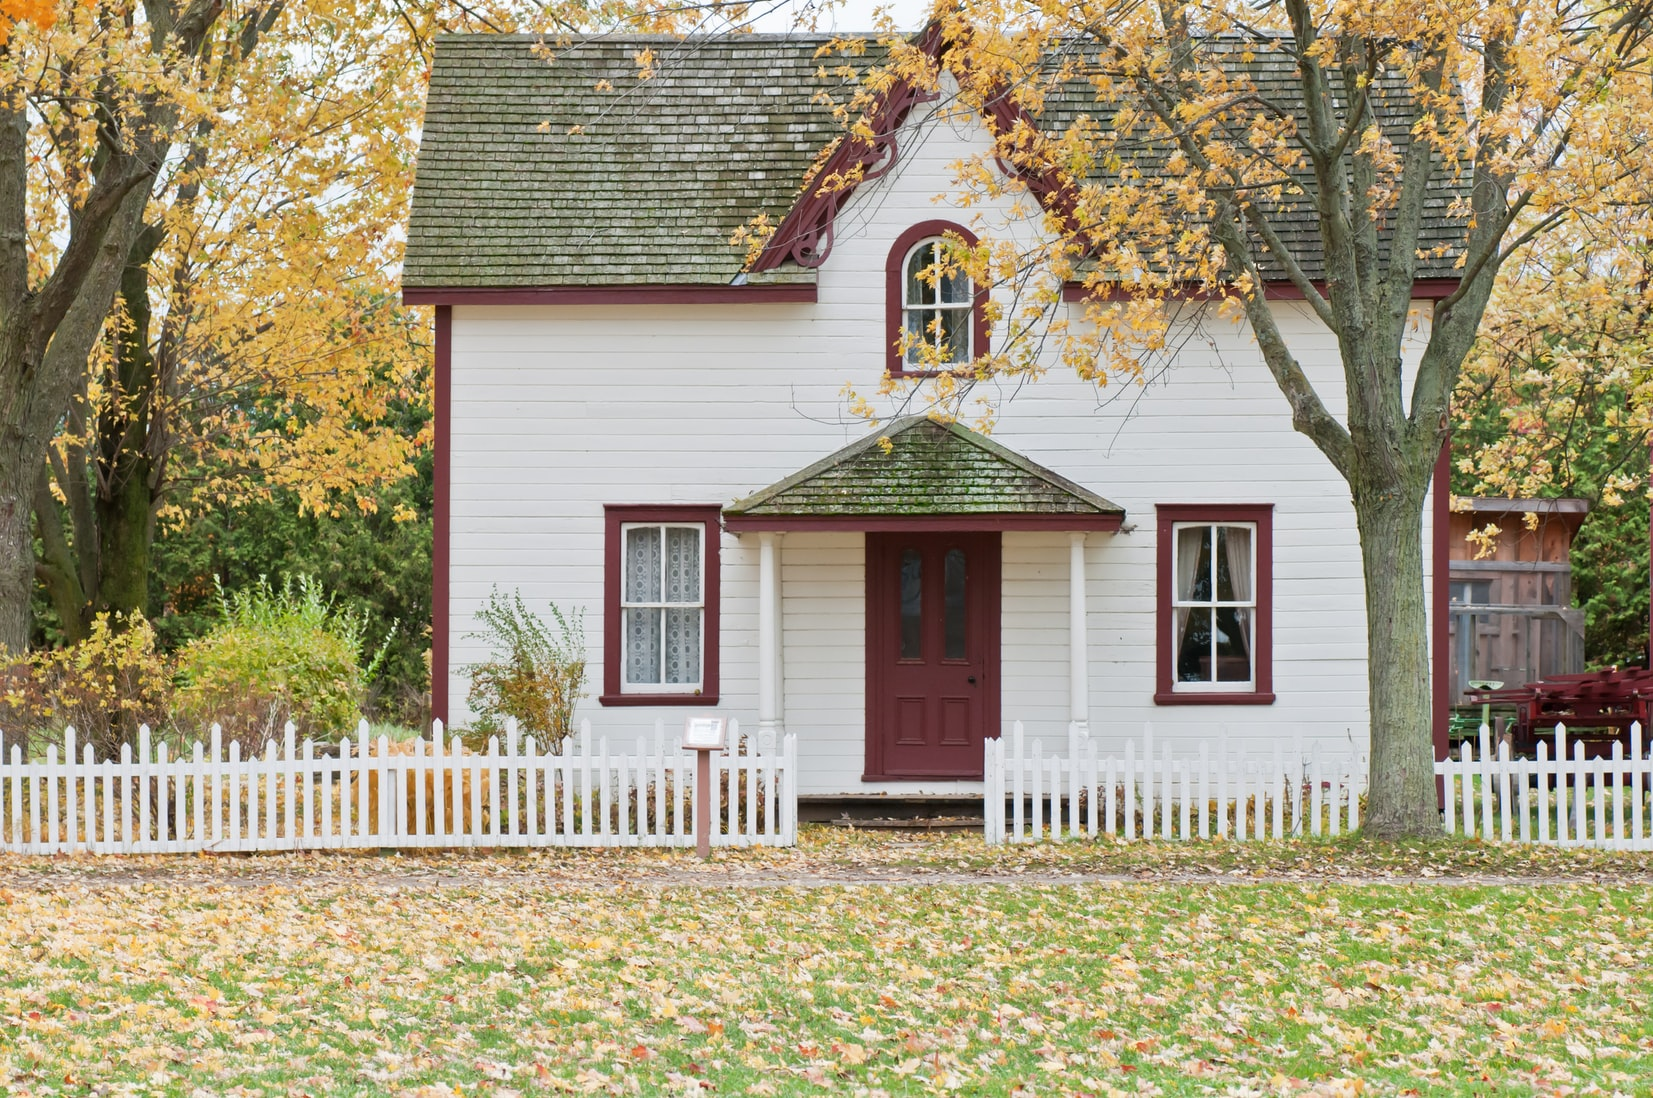 10 Things to Know Before Buying Your First Home